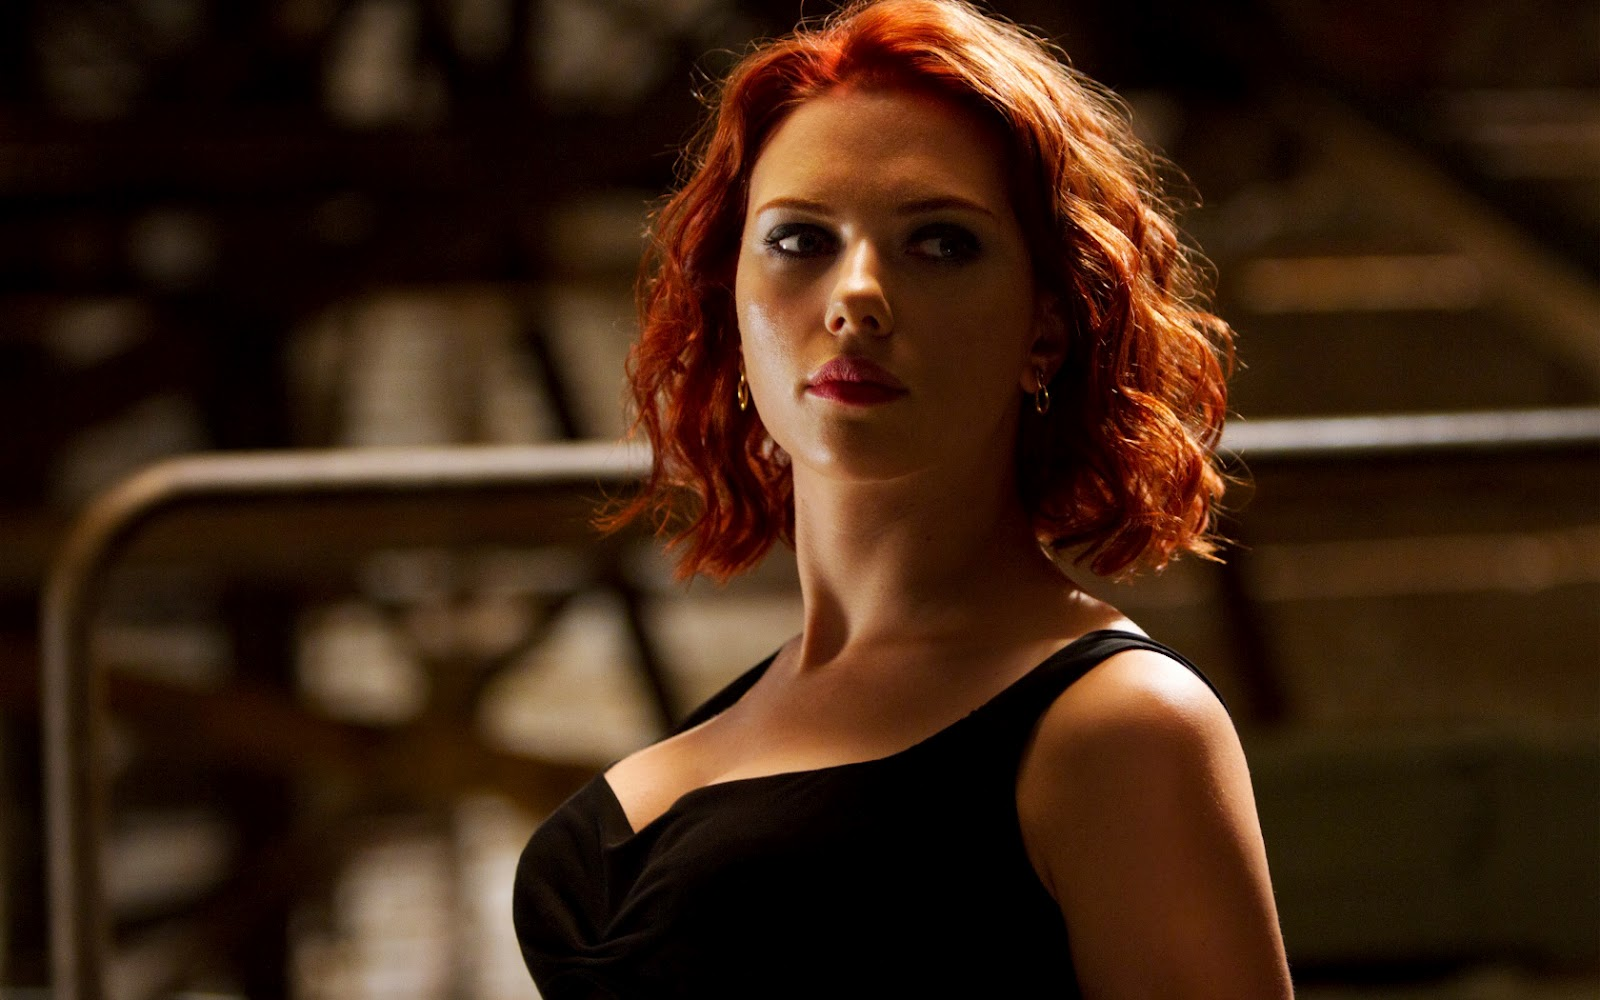 Scarlett johansson black widow wallpaper - photo#1